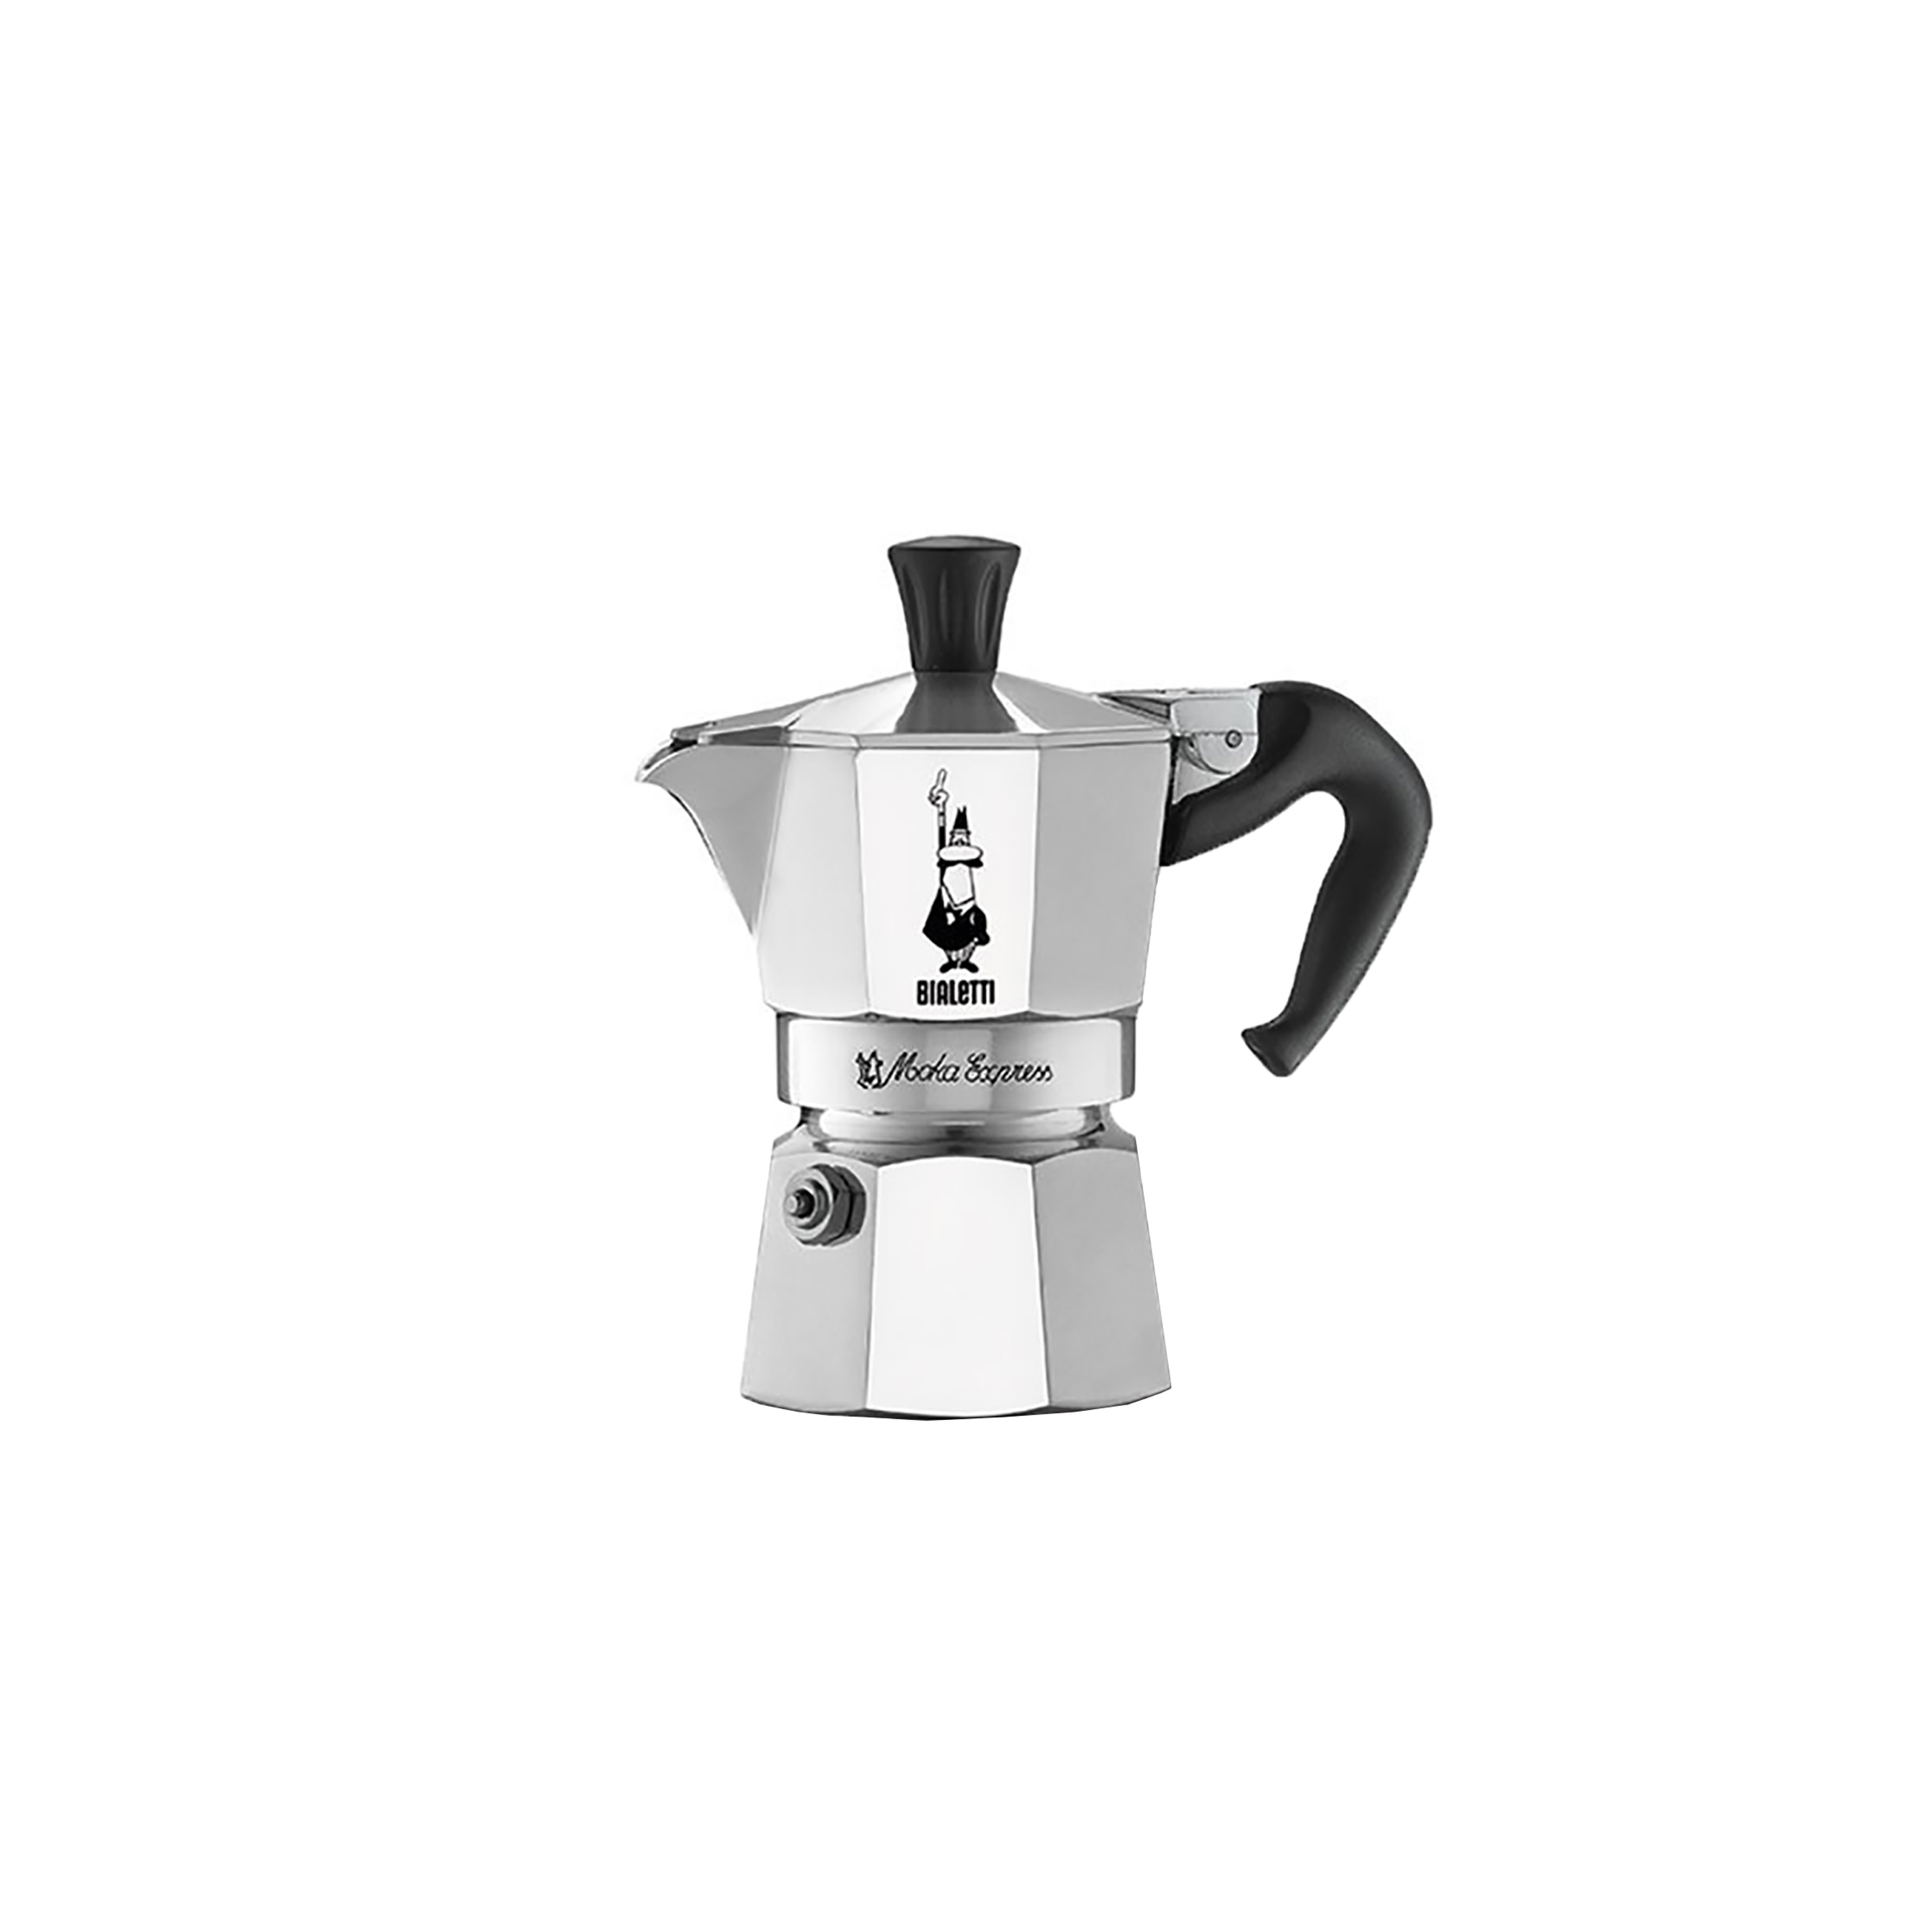 Image of Bialetti Moka Express 3-Cup Stovetop